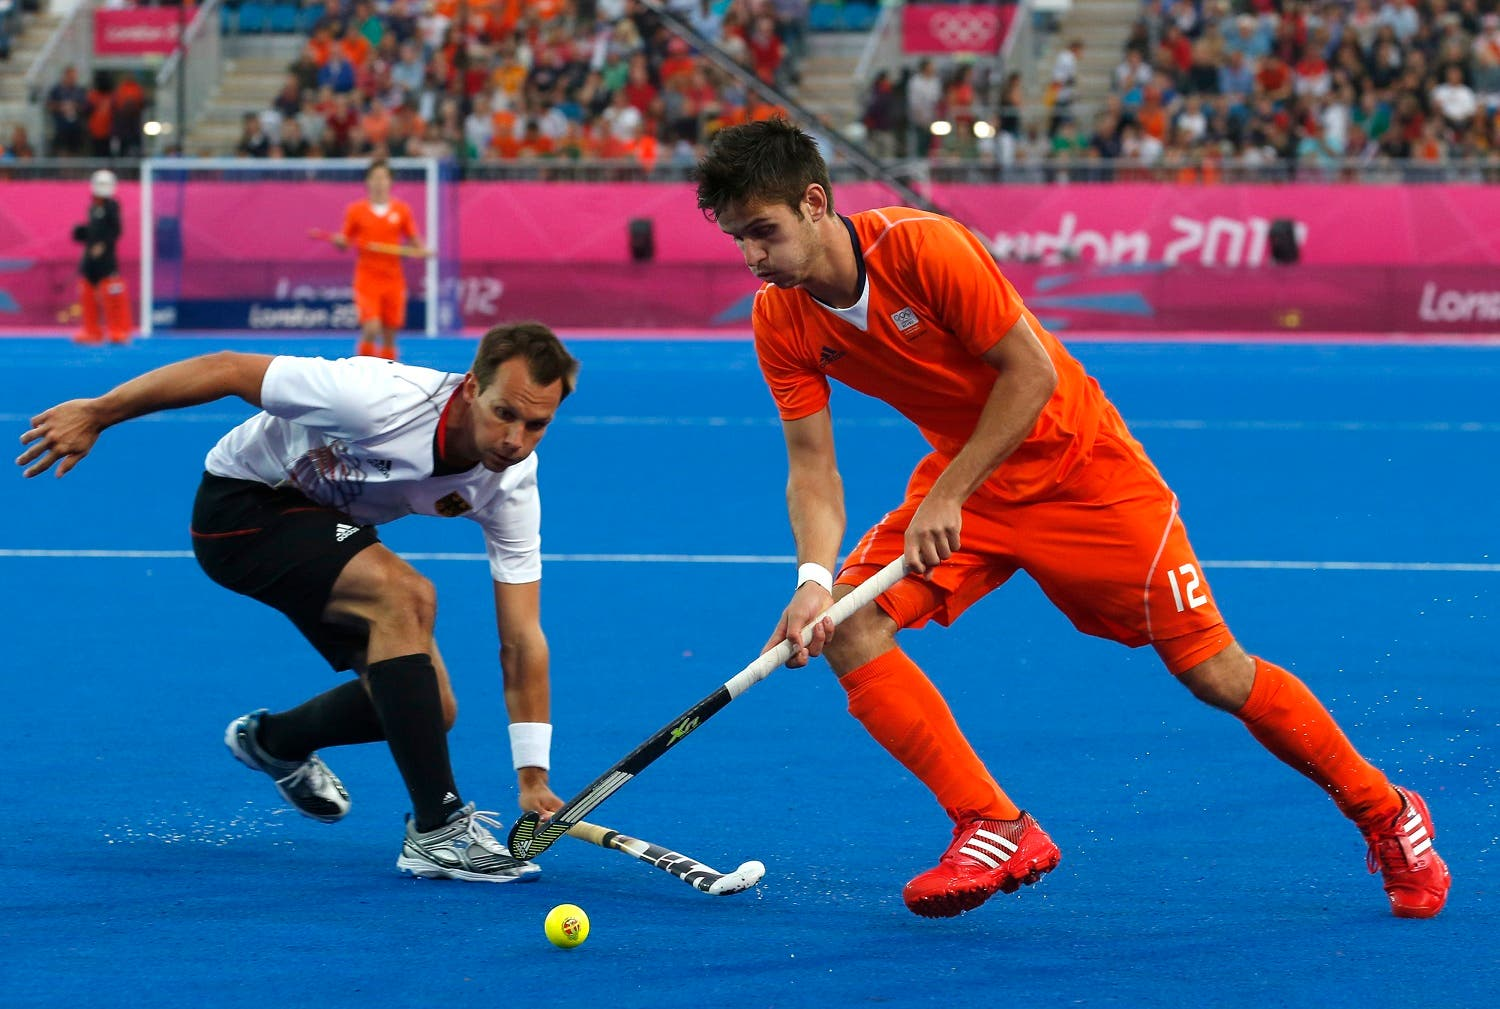 Germany's Matthias Witthaus (L) challenges Netherlands' Robbert Kemperman during their men's gold medal hockey match at the Riverbank Arena at the London 2012 Olympic Games August 11, 2012. REUTERS